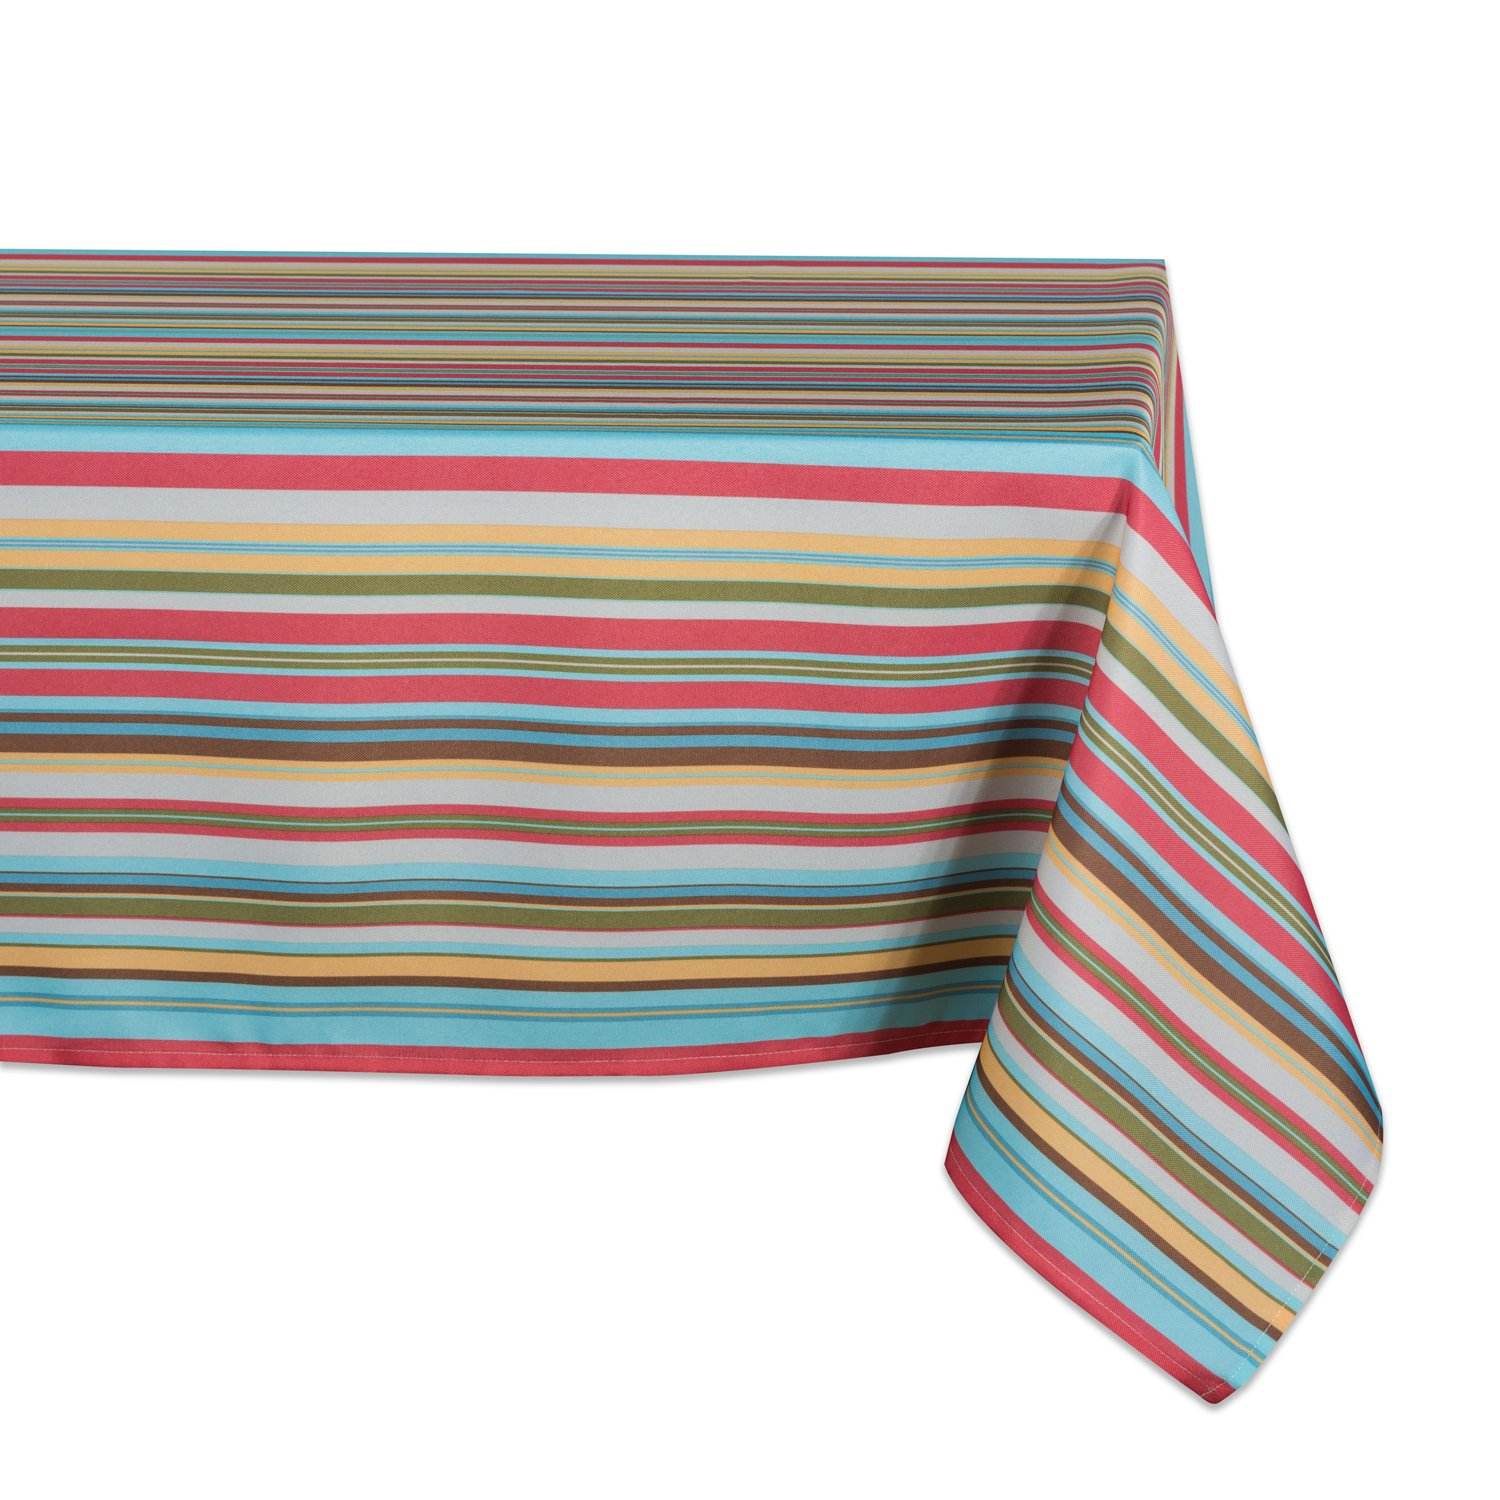 DII CAMZ36766 Spring & Summber Tablecloth Spill Proof and Waterproof, 60'' x 84'', Summer Stripe